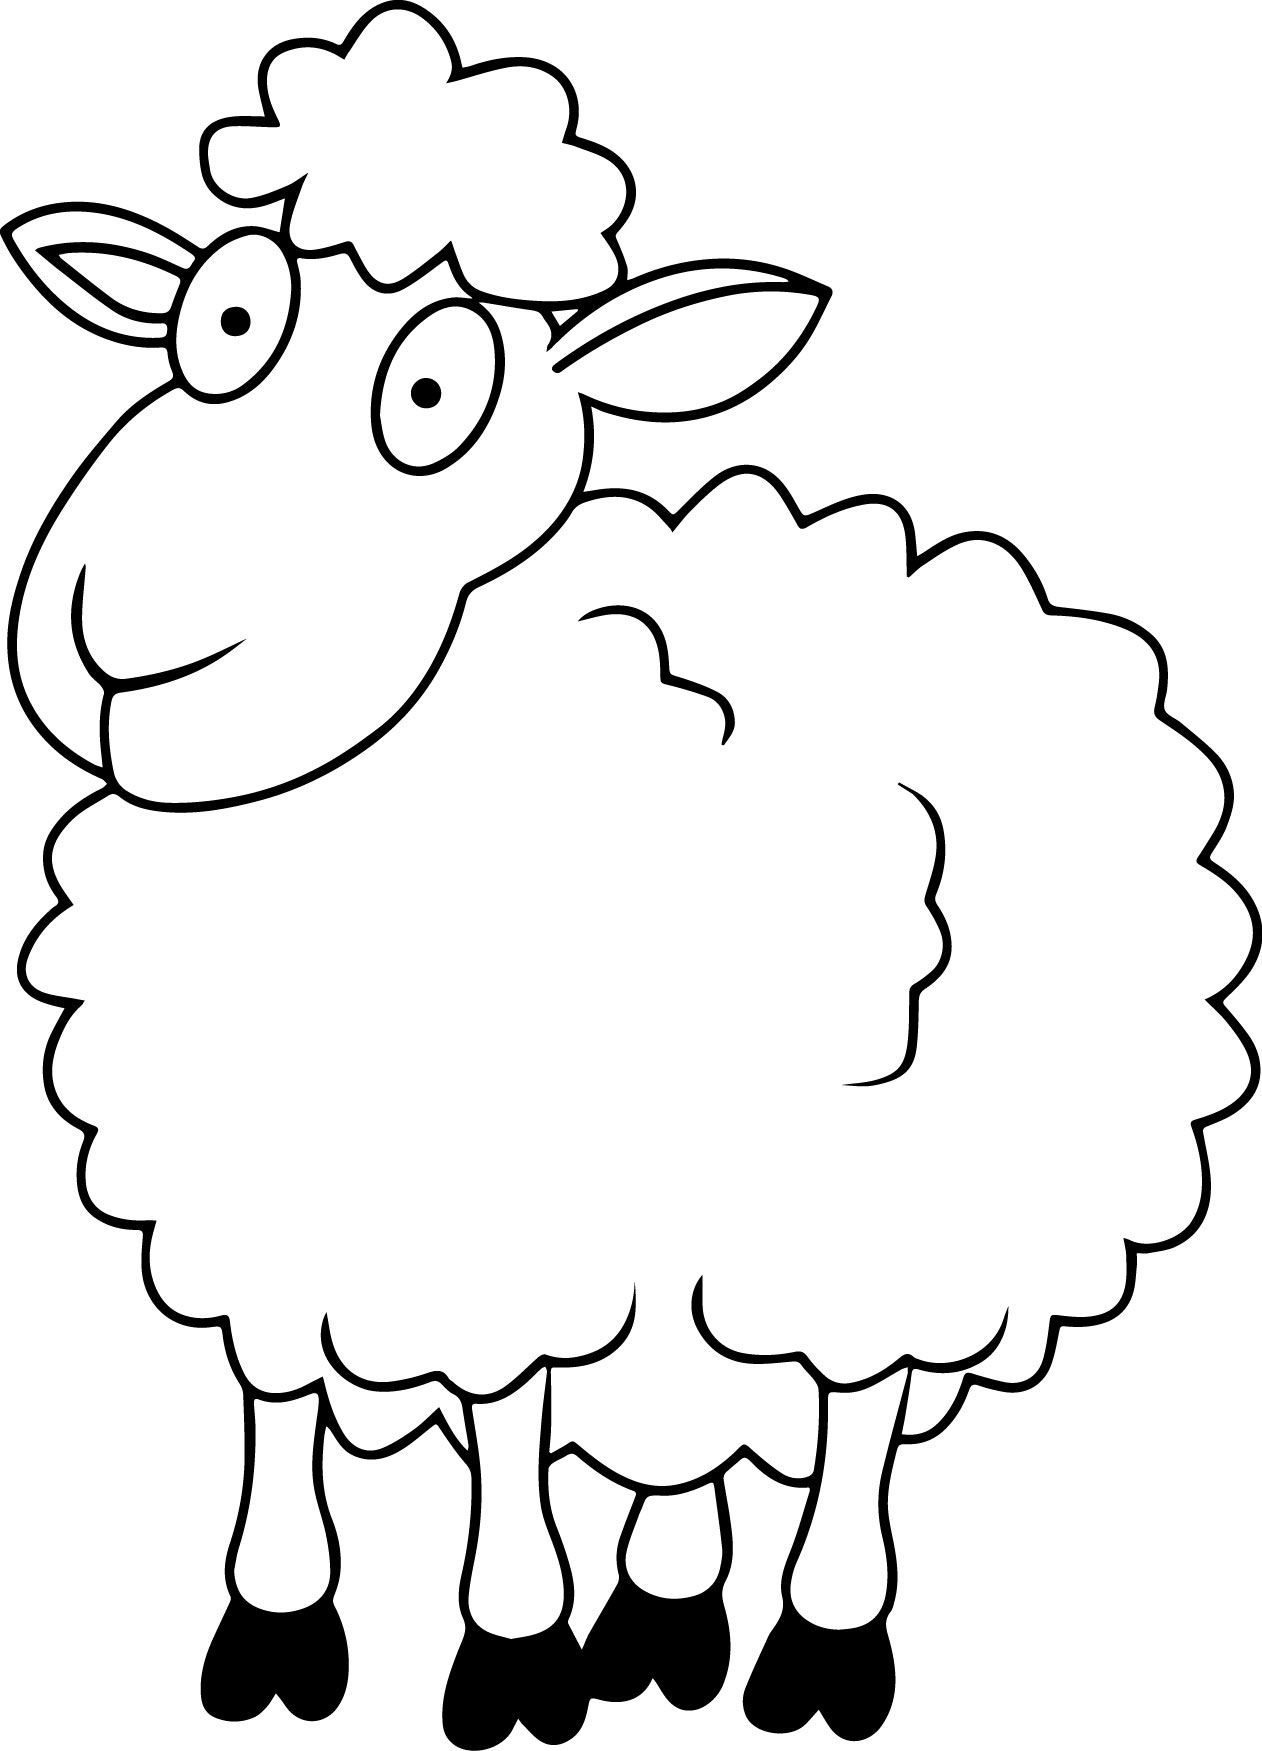 sheep pictures to color pin by larketta anderson on church ideas oveja para color sheep pictures to